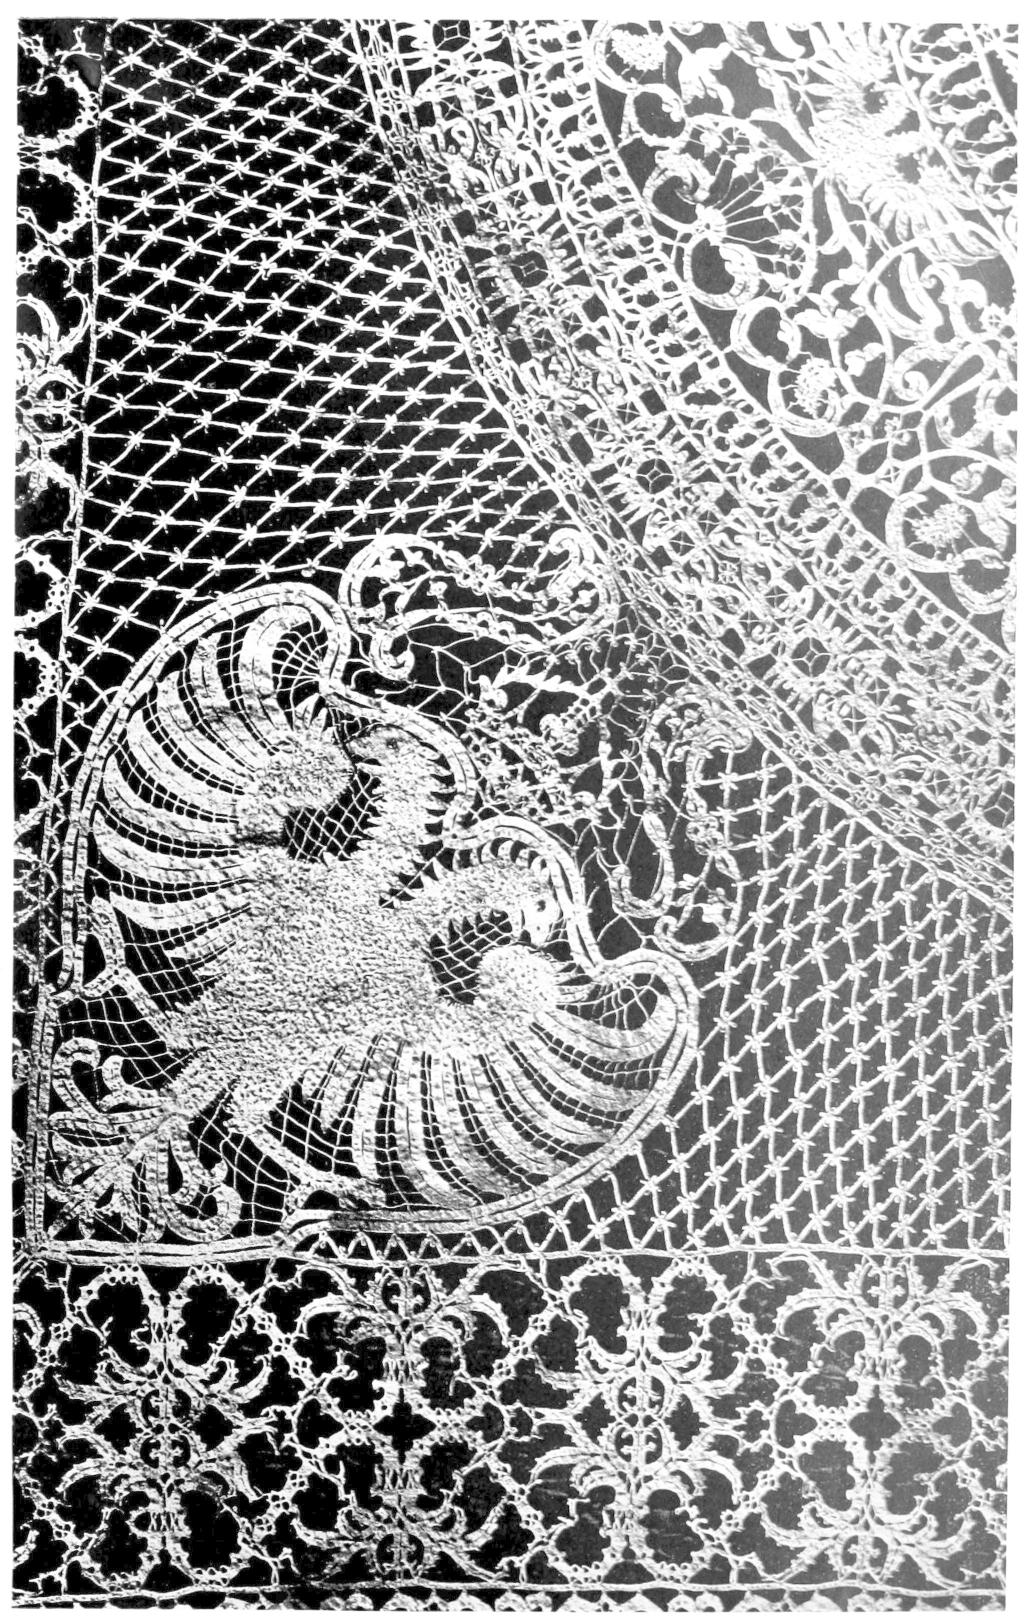 Lace featuring double-headed eagle motif